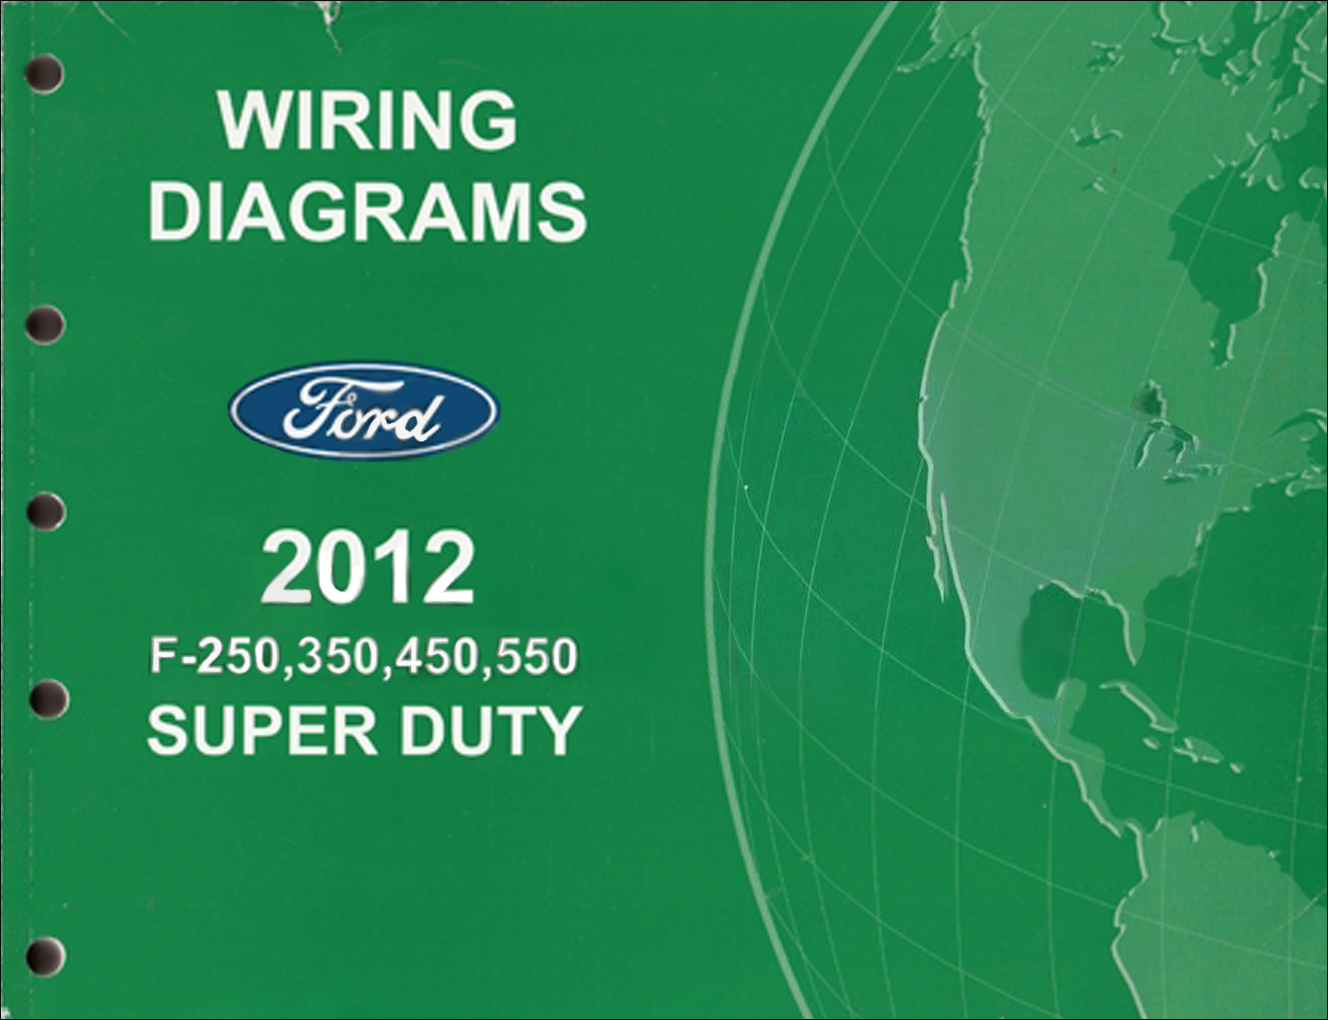 2012 ford f 250 thru 550 super duty wiring diagram manual original rh faxonautoliterature com 2012 ford fiesta wiring diagram 2012 ford mustang wiring diagram